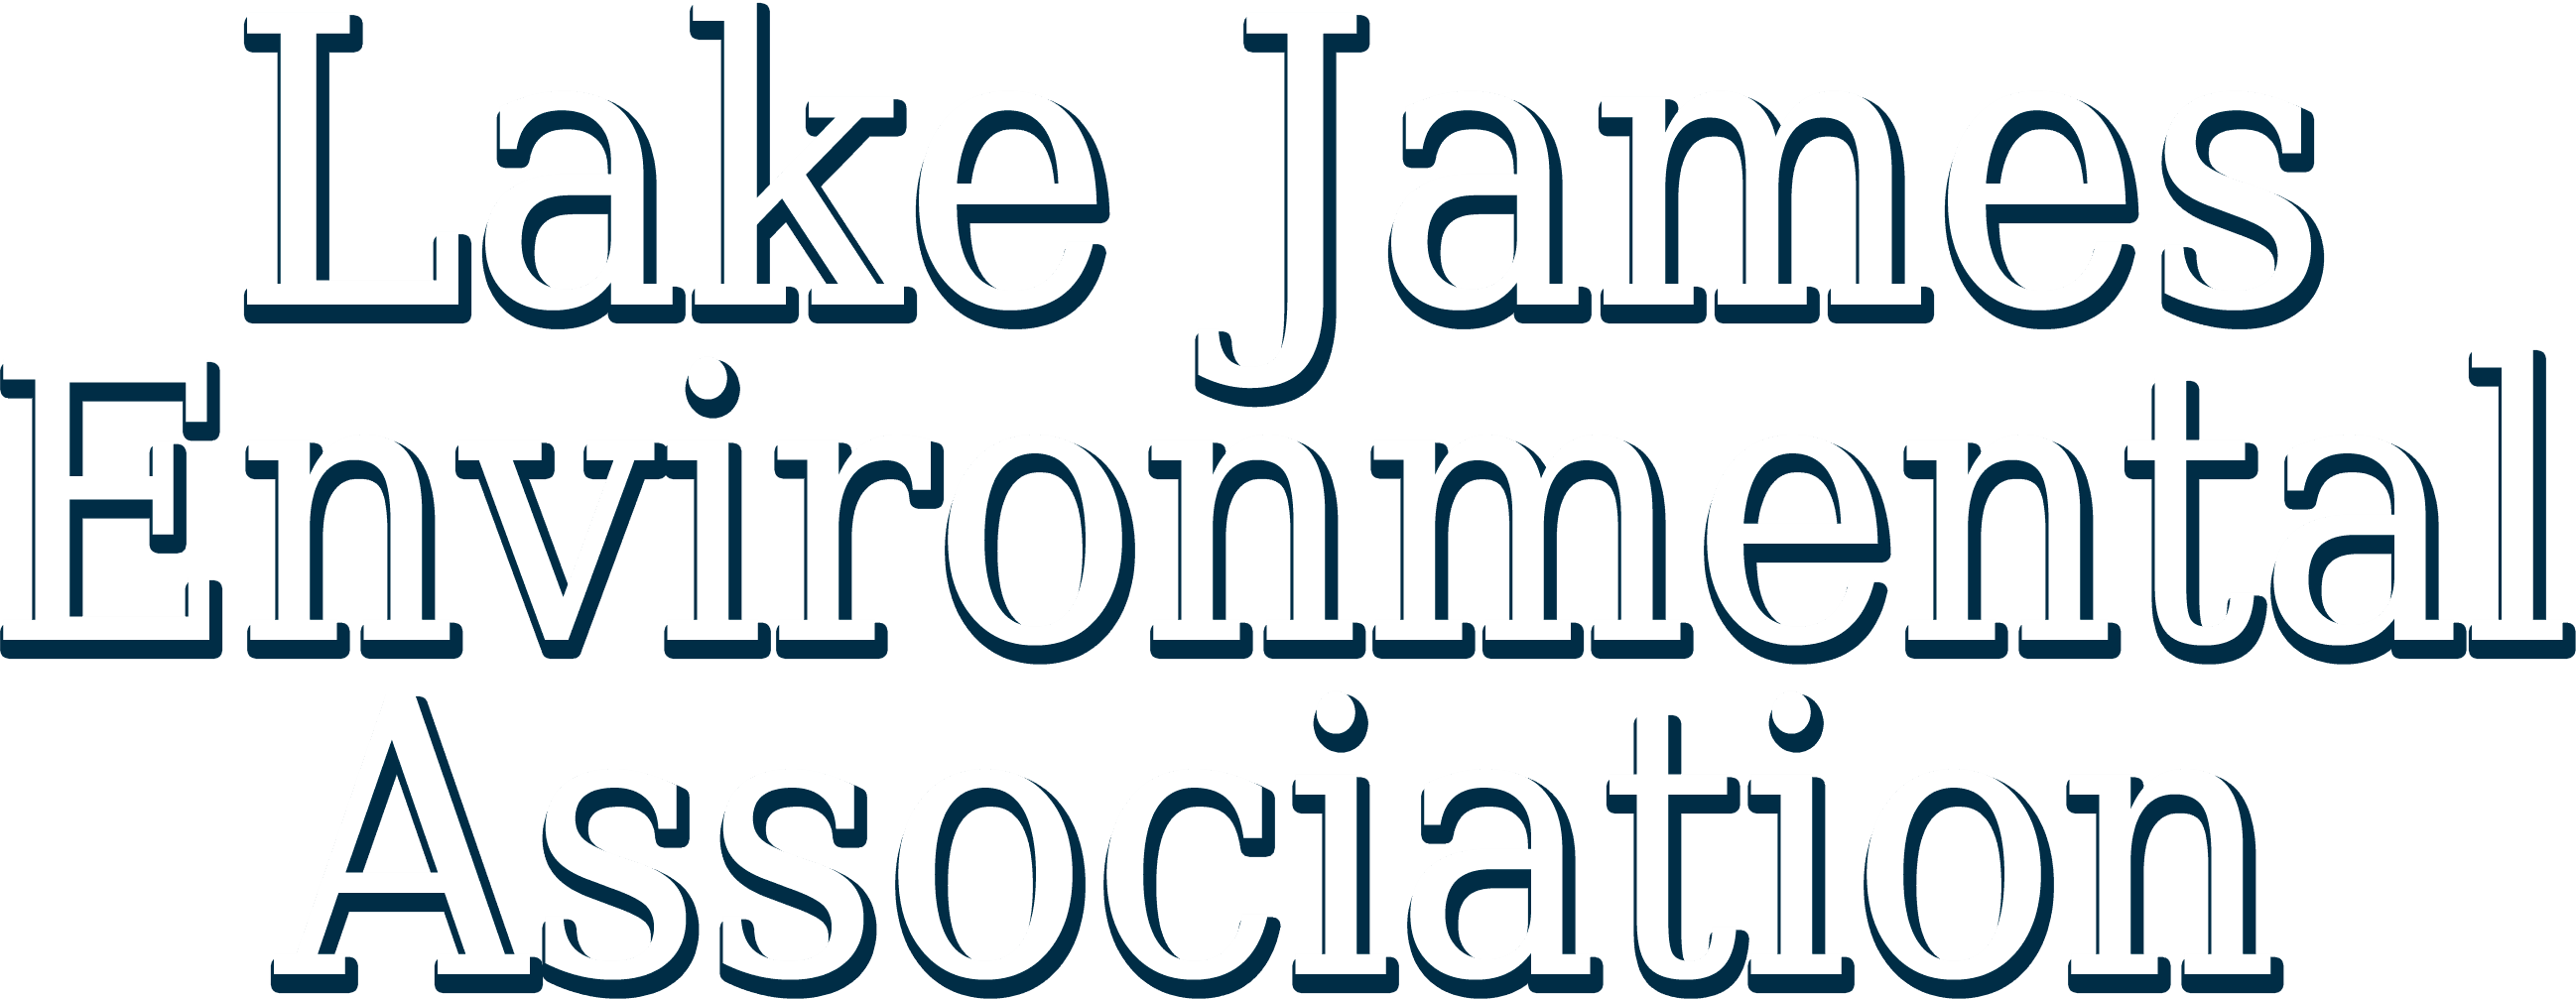 Lake James Environmental Association